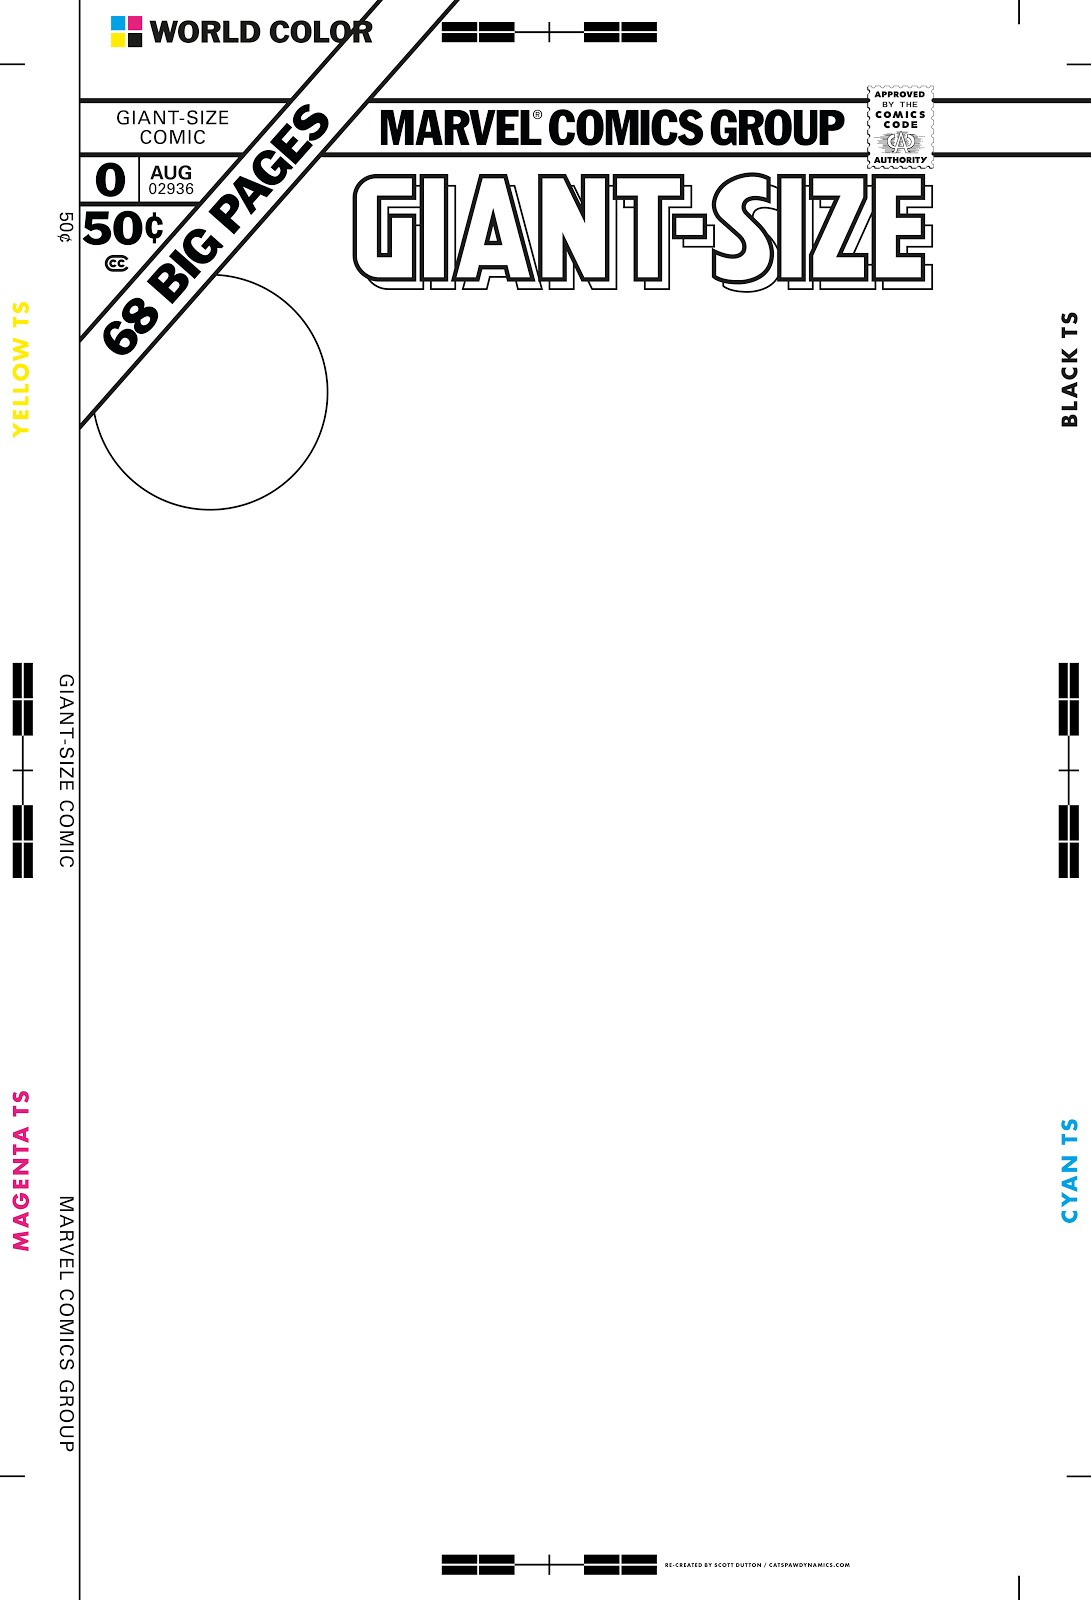 Marvel Comic Book Cover Template : Giant size marvel create your own cover